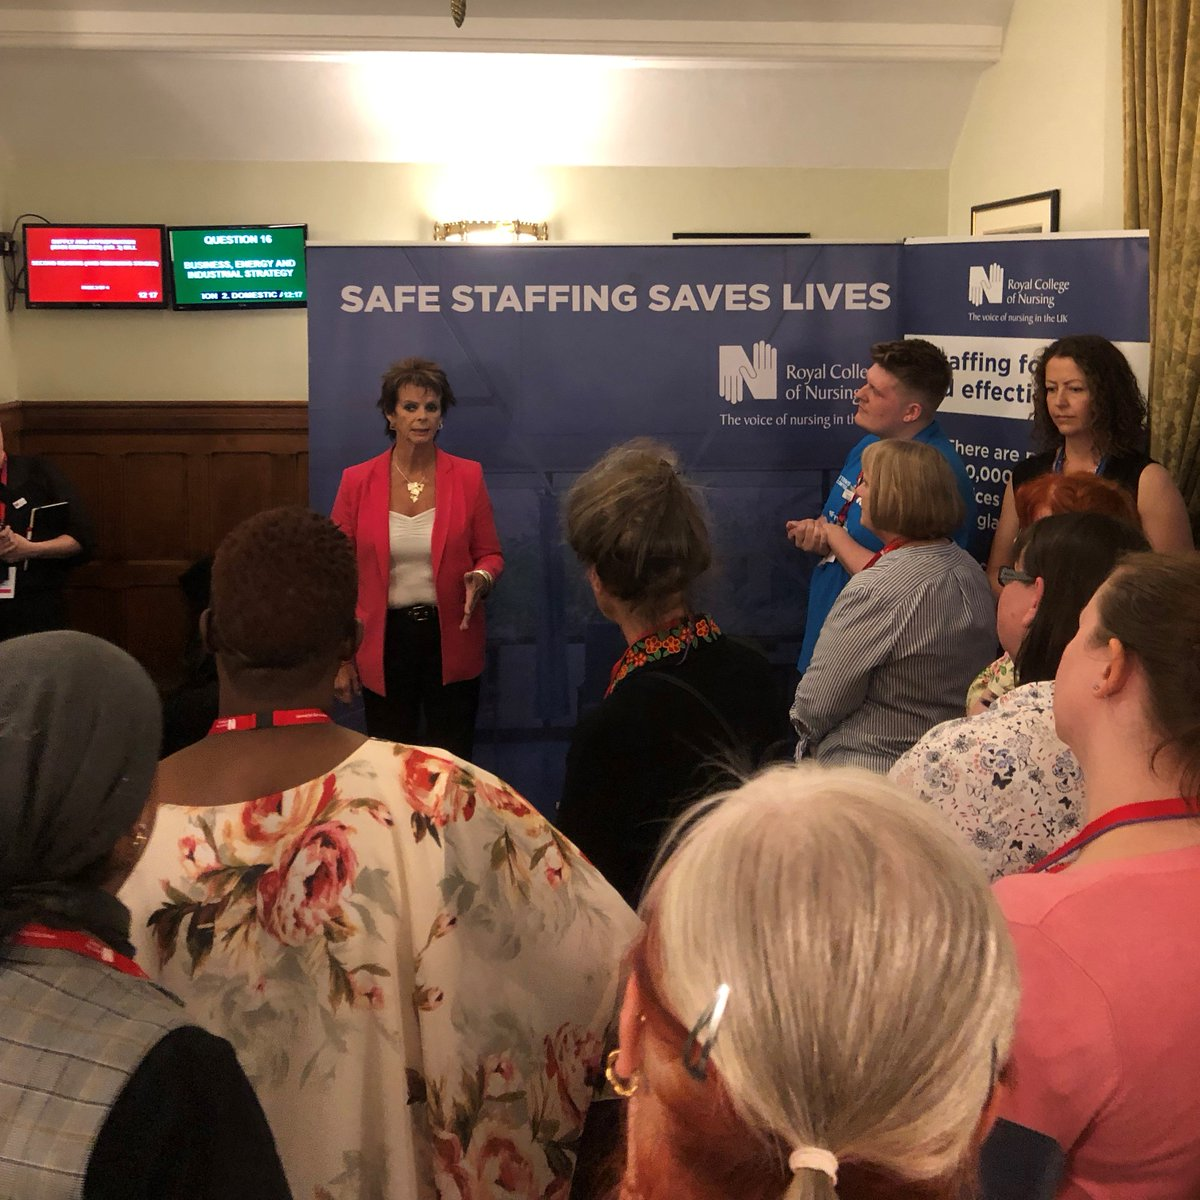 An honour to talk to nursing staff and students in the House of Commons yesterday and to discuss training and apprenticeships for nurses. Thank you to the Royal College of Nursing for inviting me to talk - as I said yesterday 'once a nurse, always a nurse!'